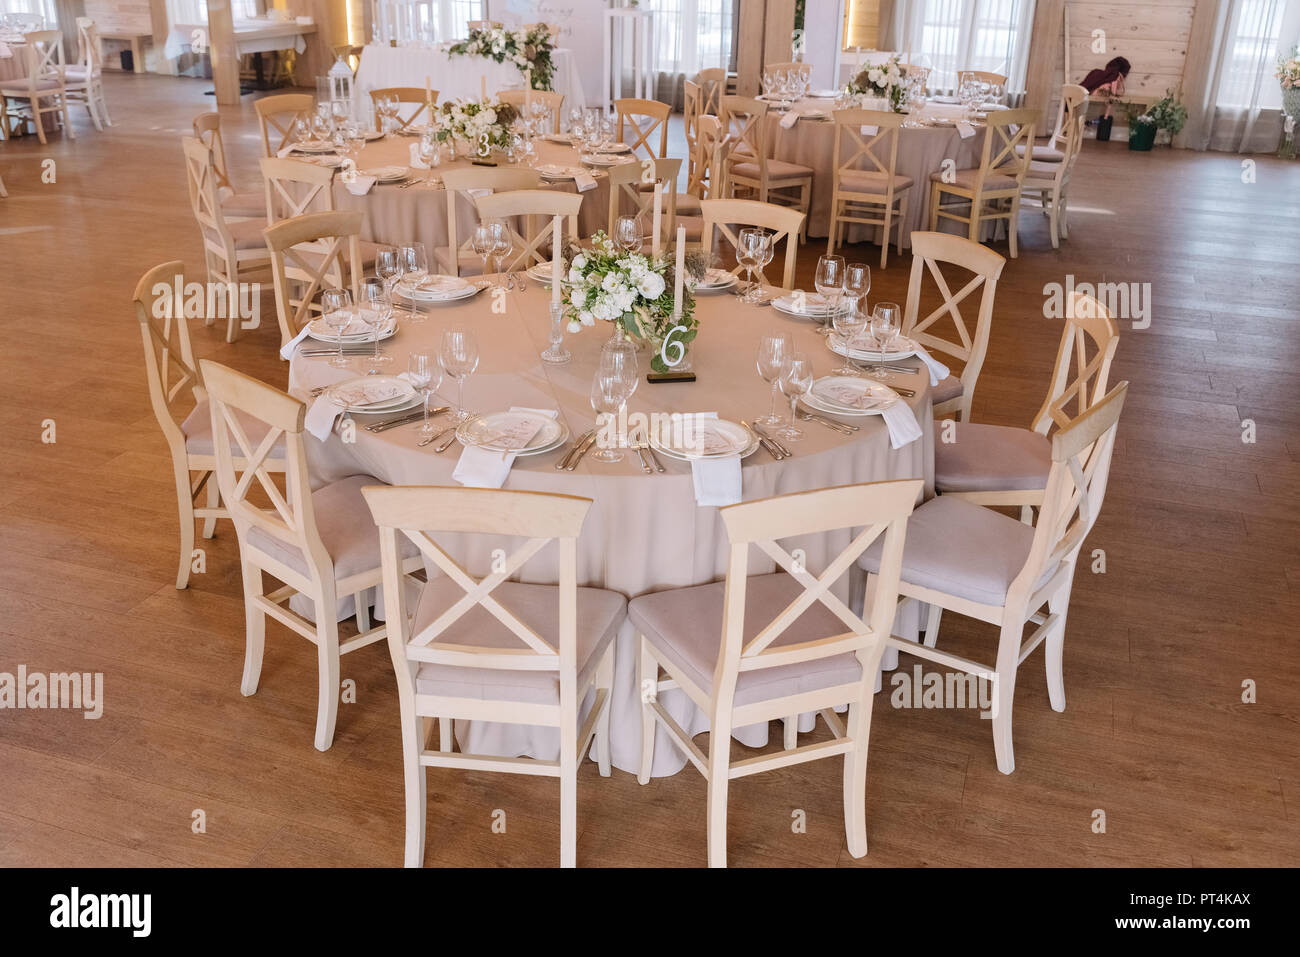 Festive lunch at restaurant. A wedding table for guests. Round banquet table - Stock Image